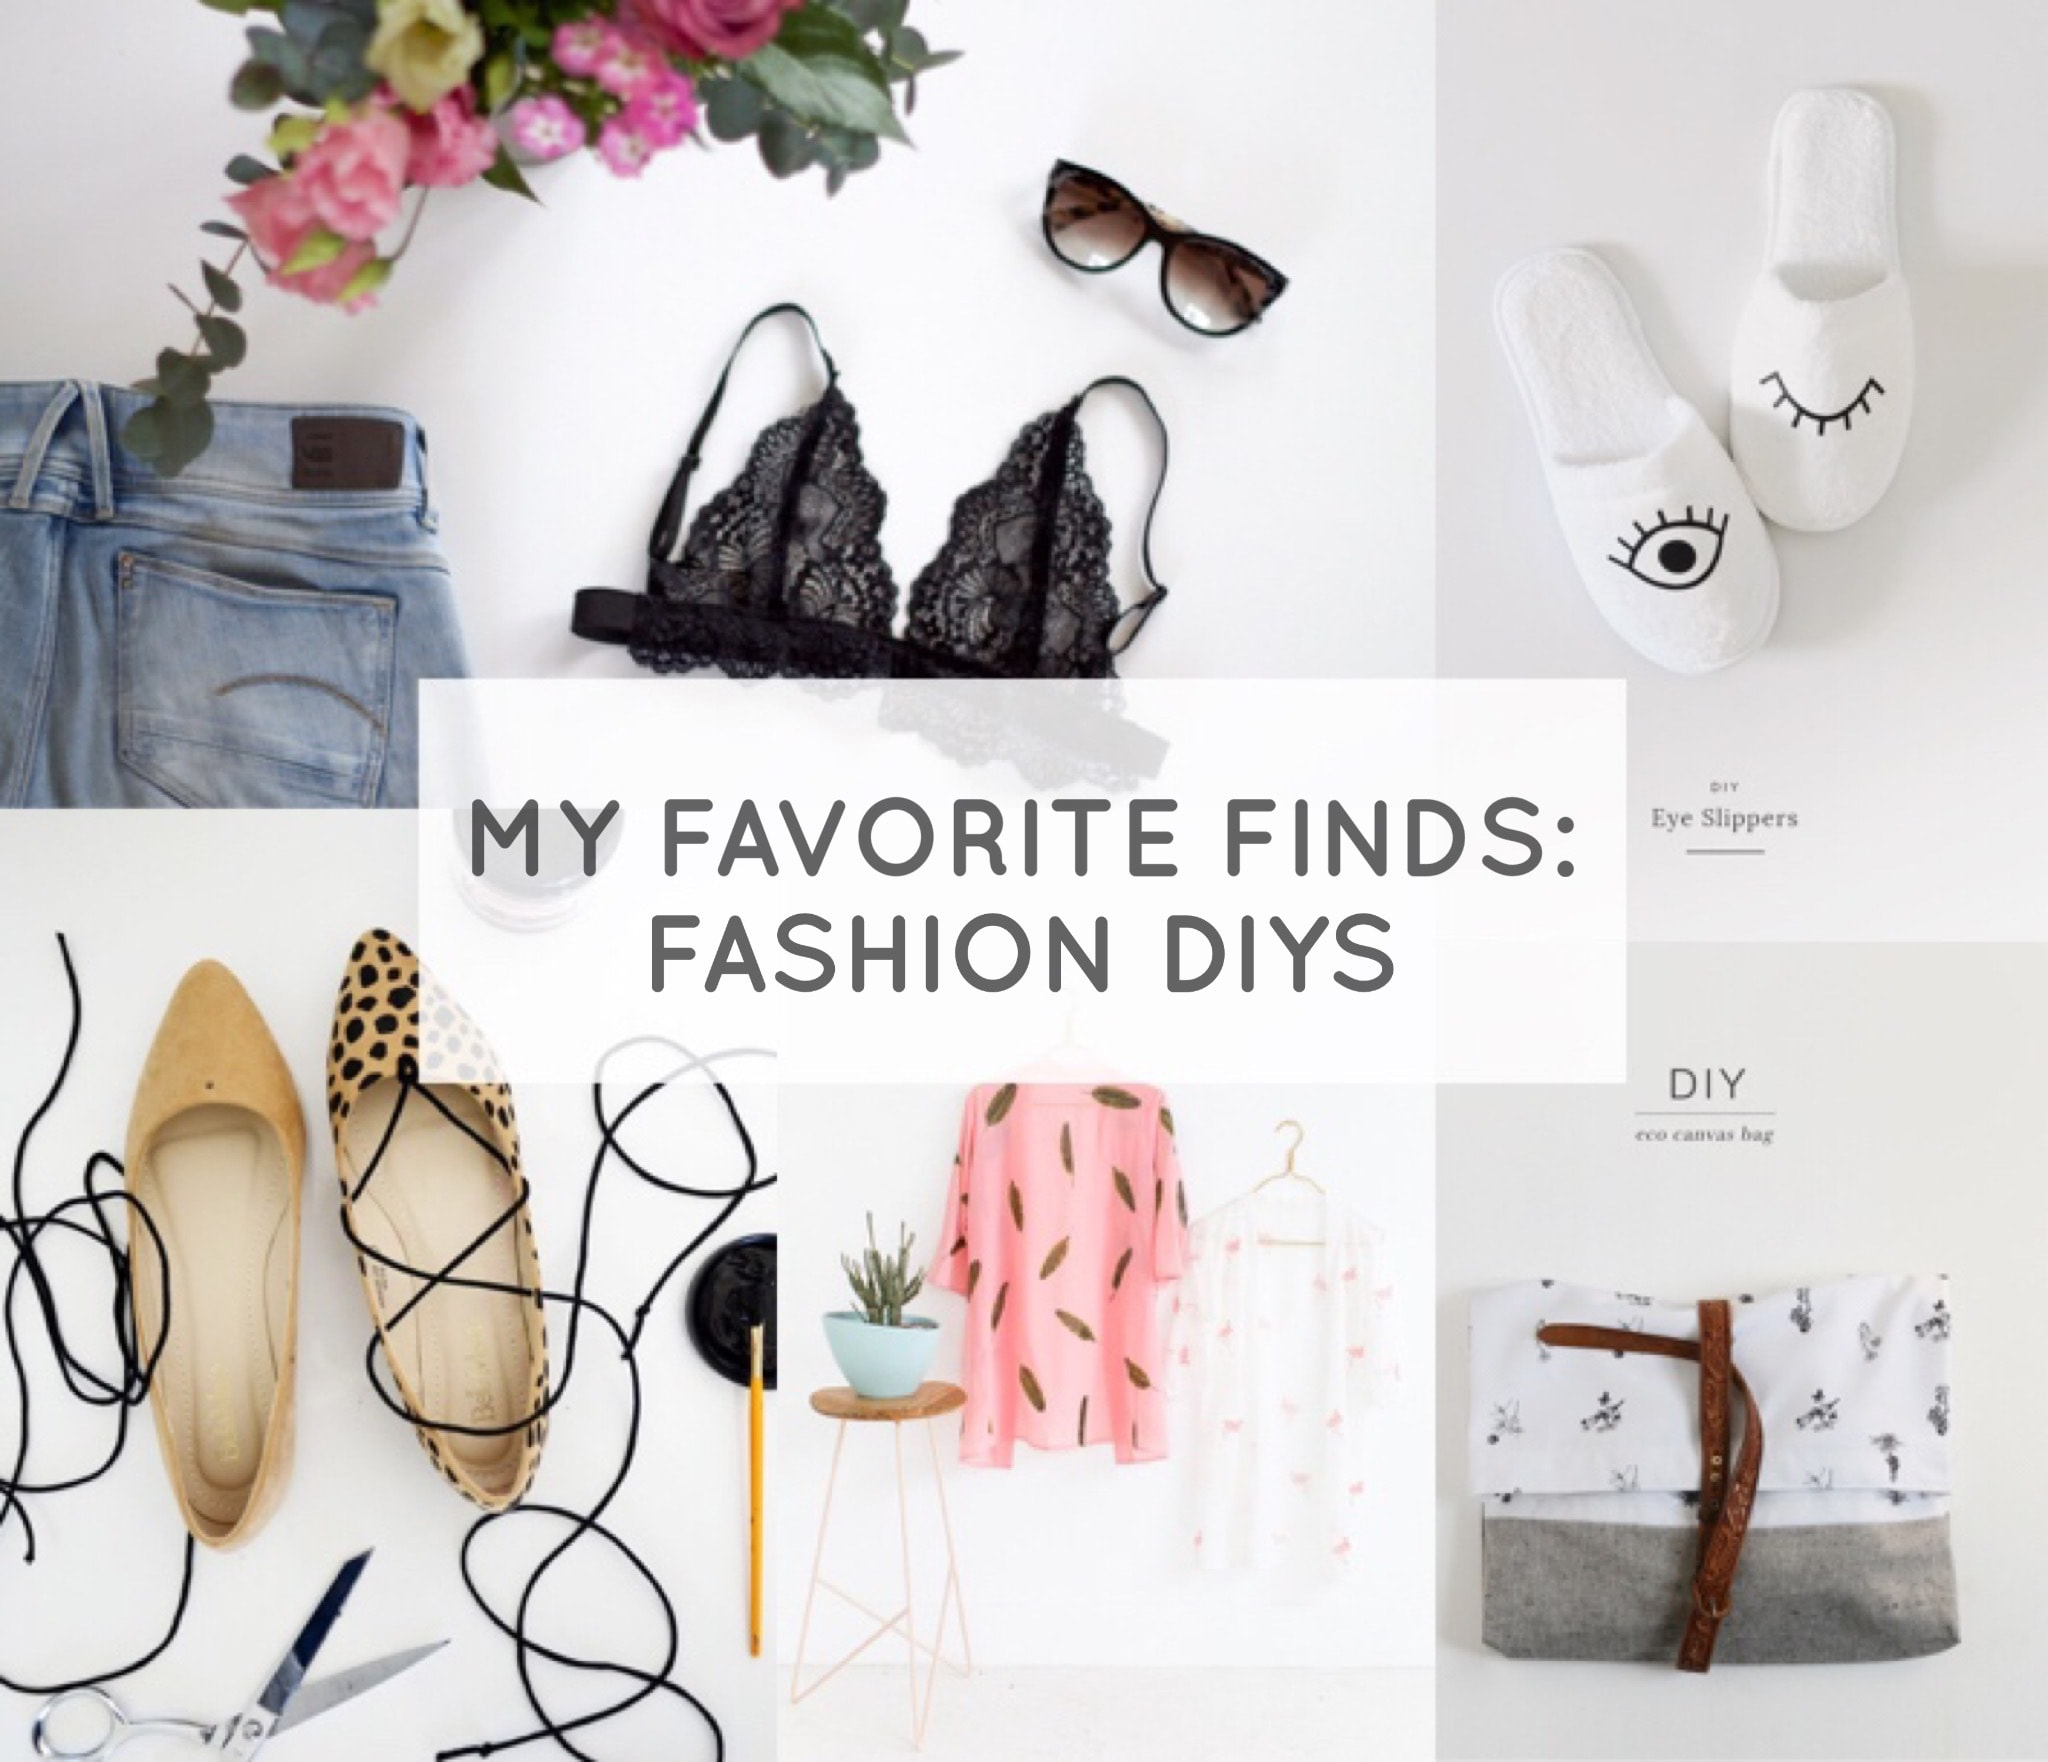 My Favorite Finds: Fashion DIYs